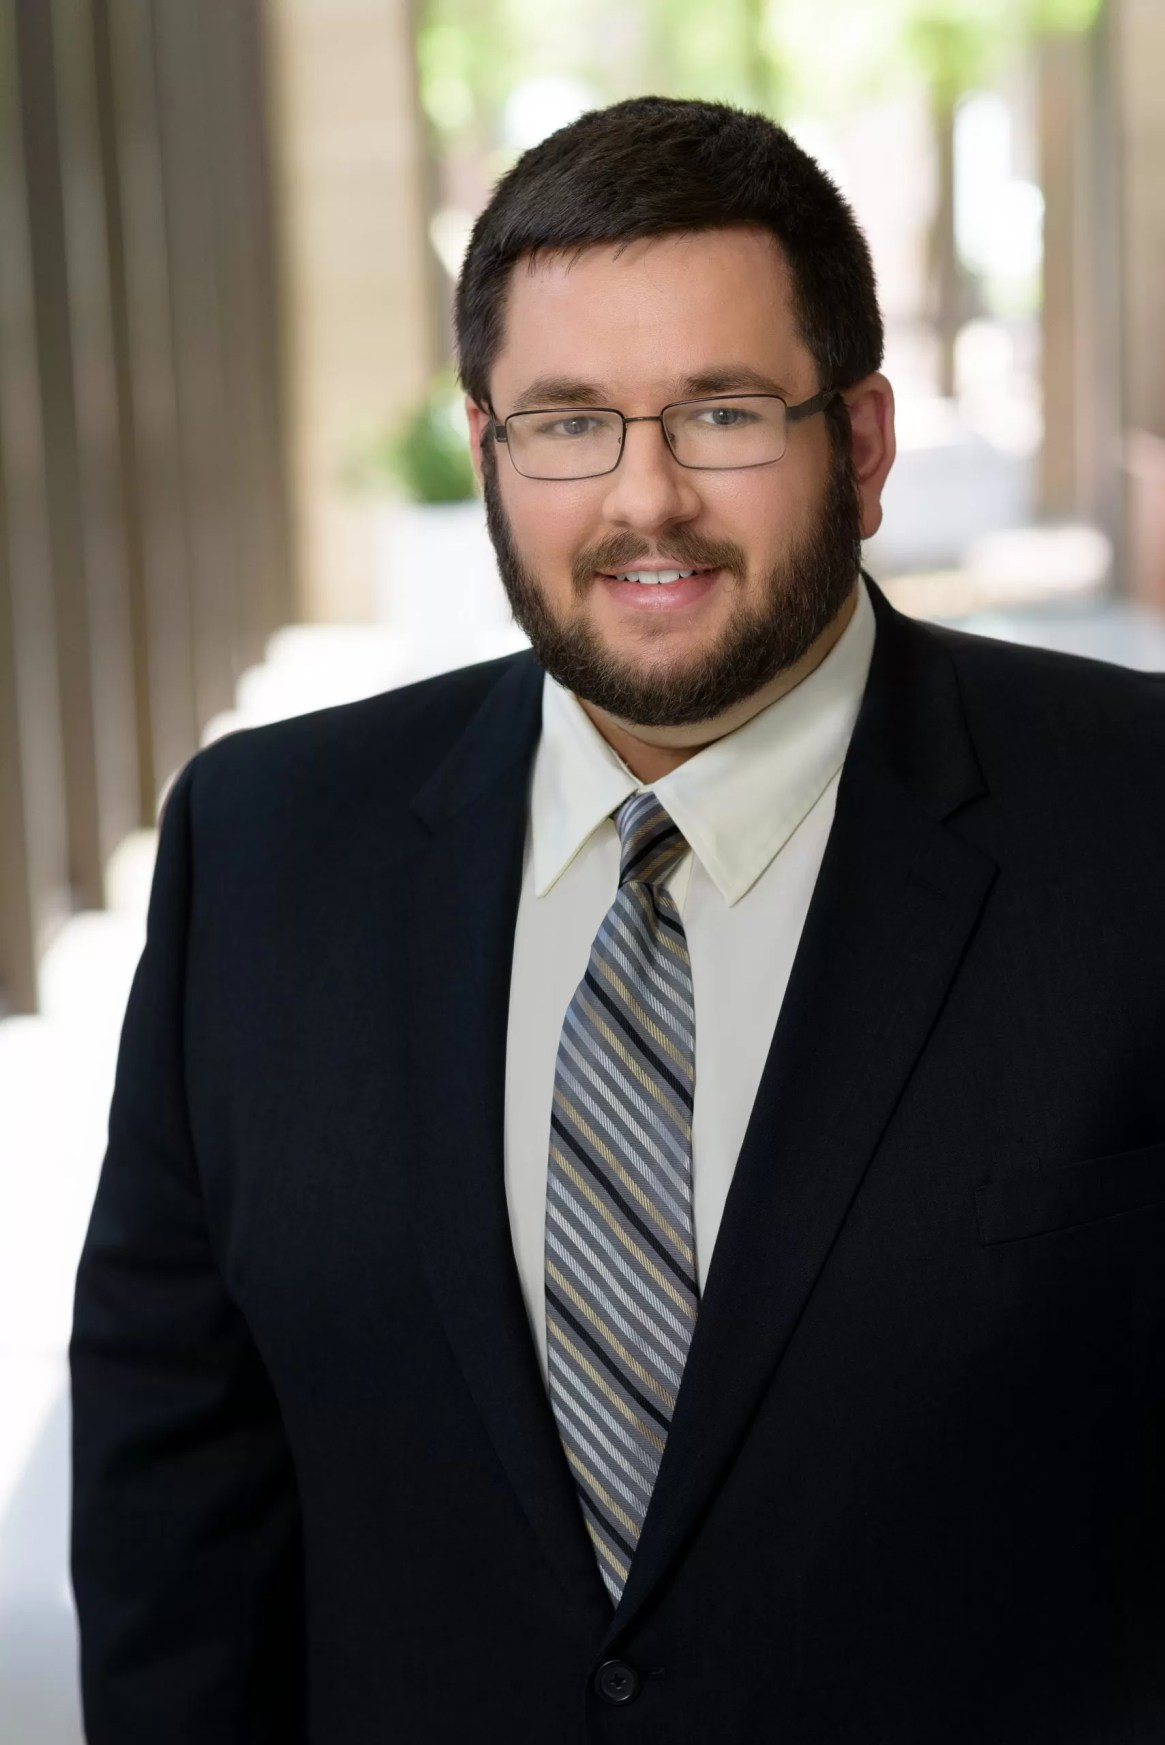 Alex Farquhar is an associate Immigration attorney of David Swaim & Associates that specializes in employment-based immigration classifications.